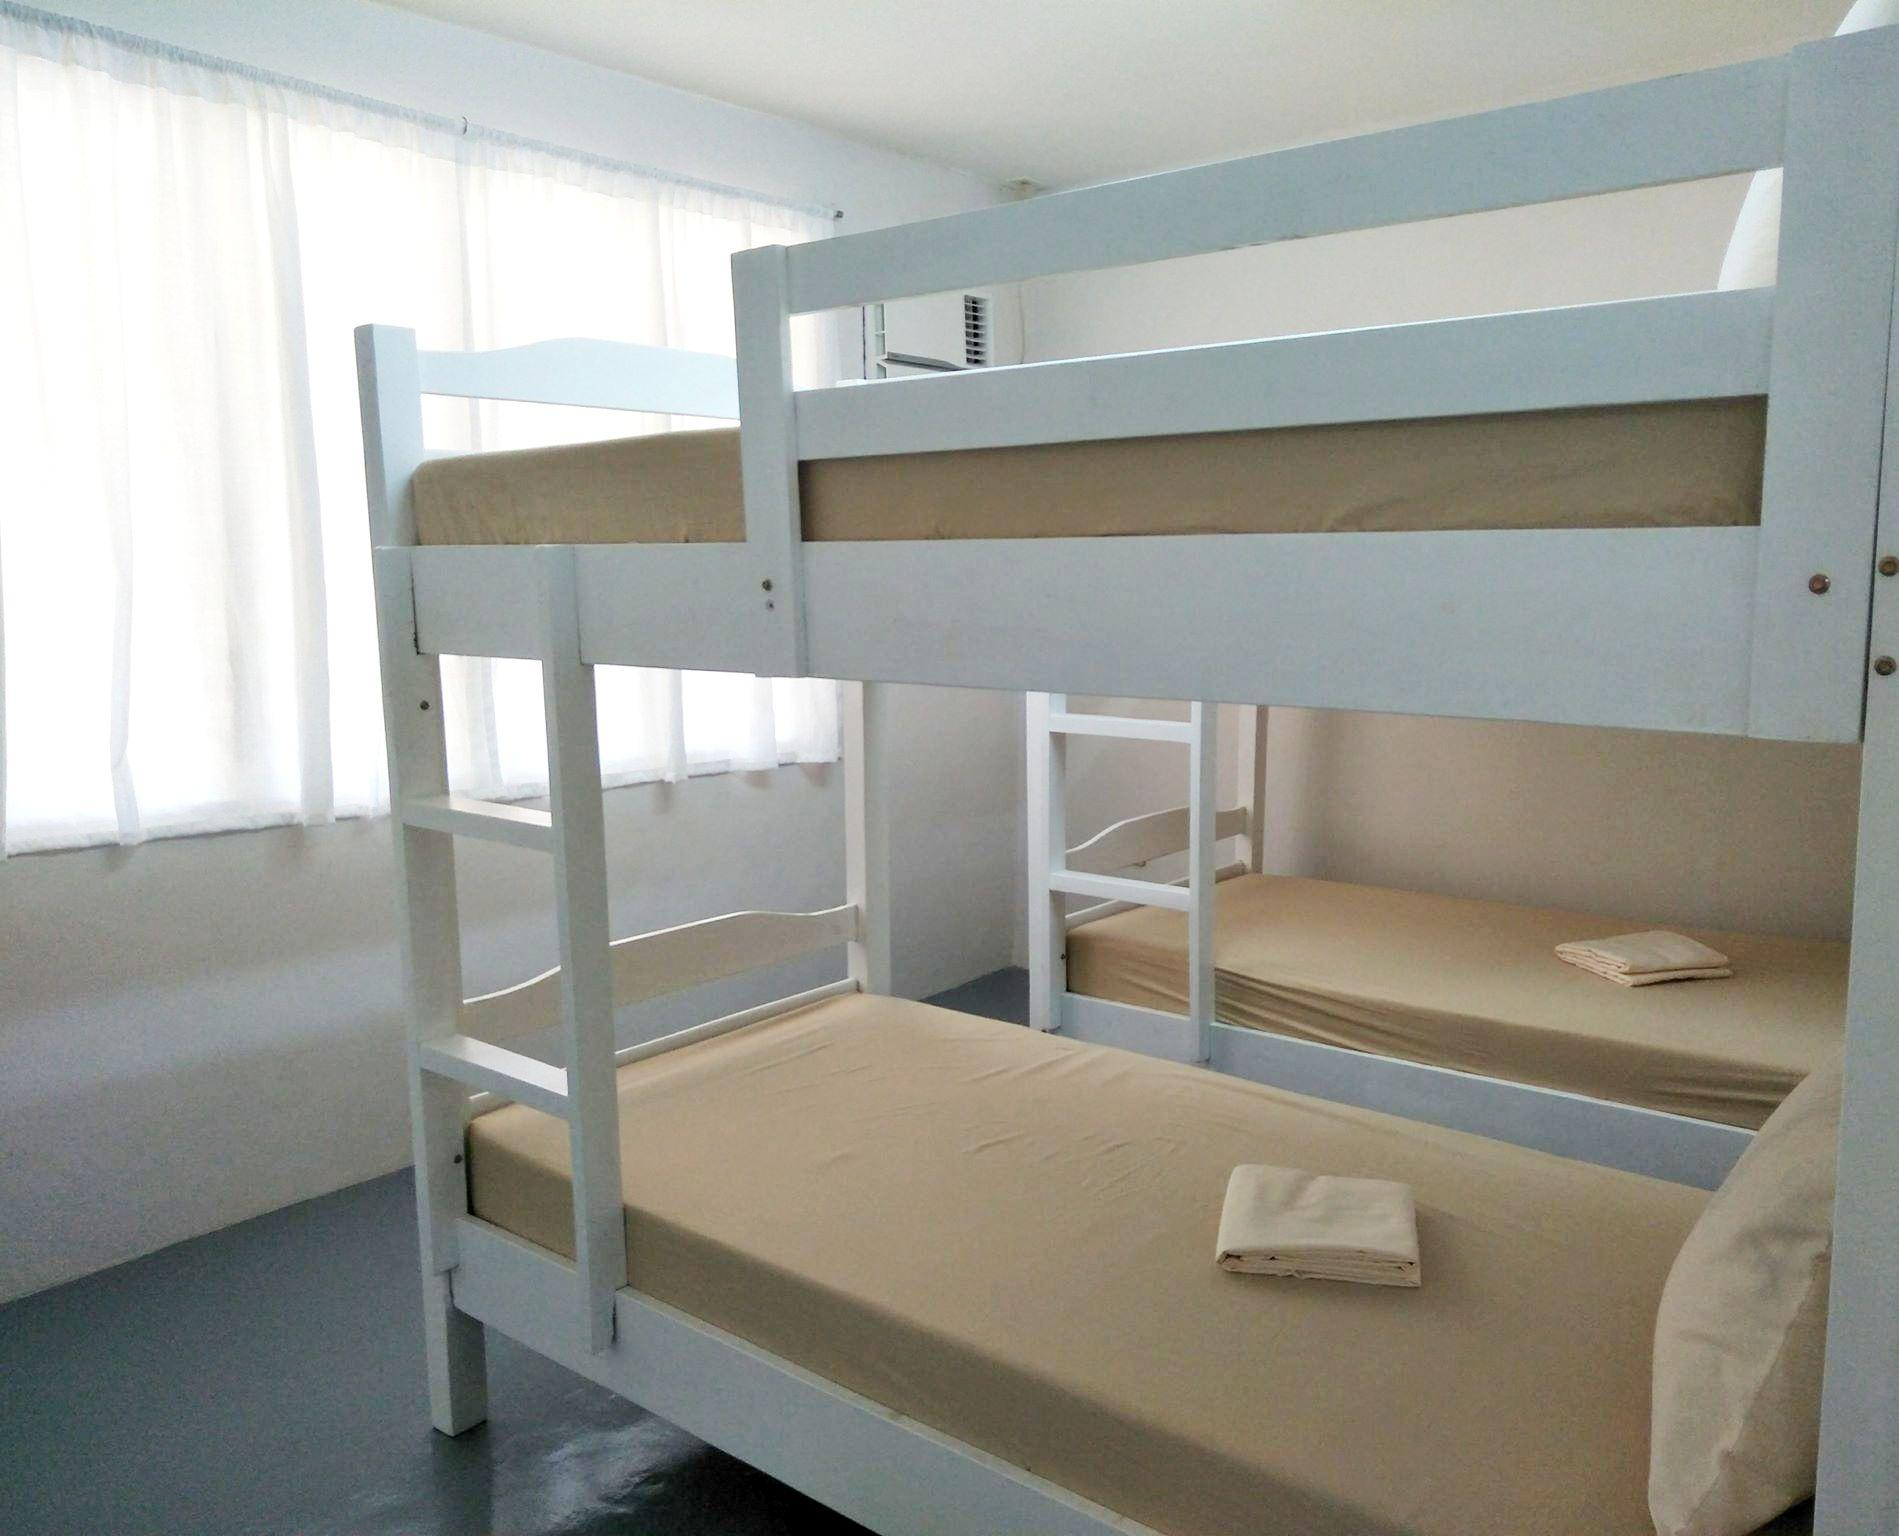 Quad - 2 Bunk Beds